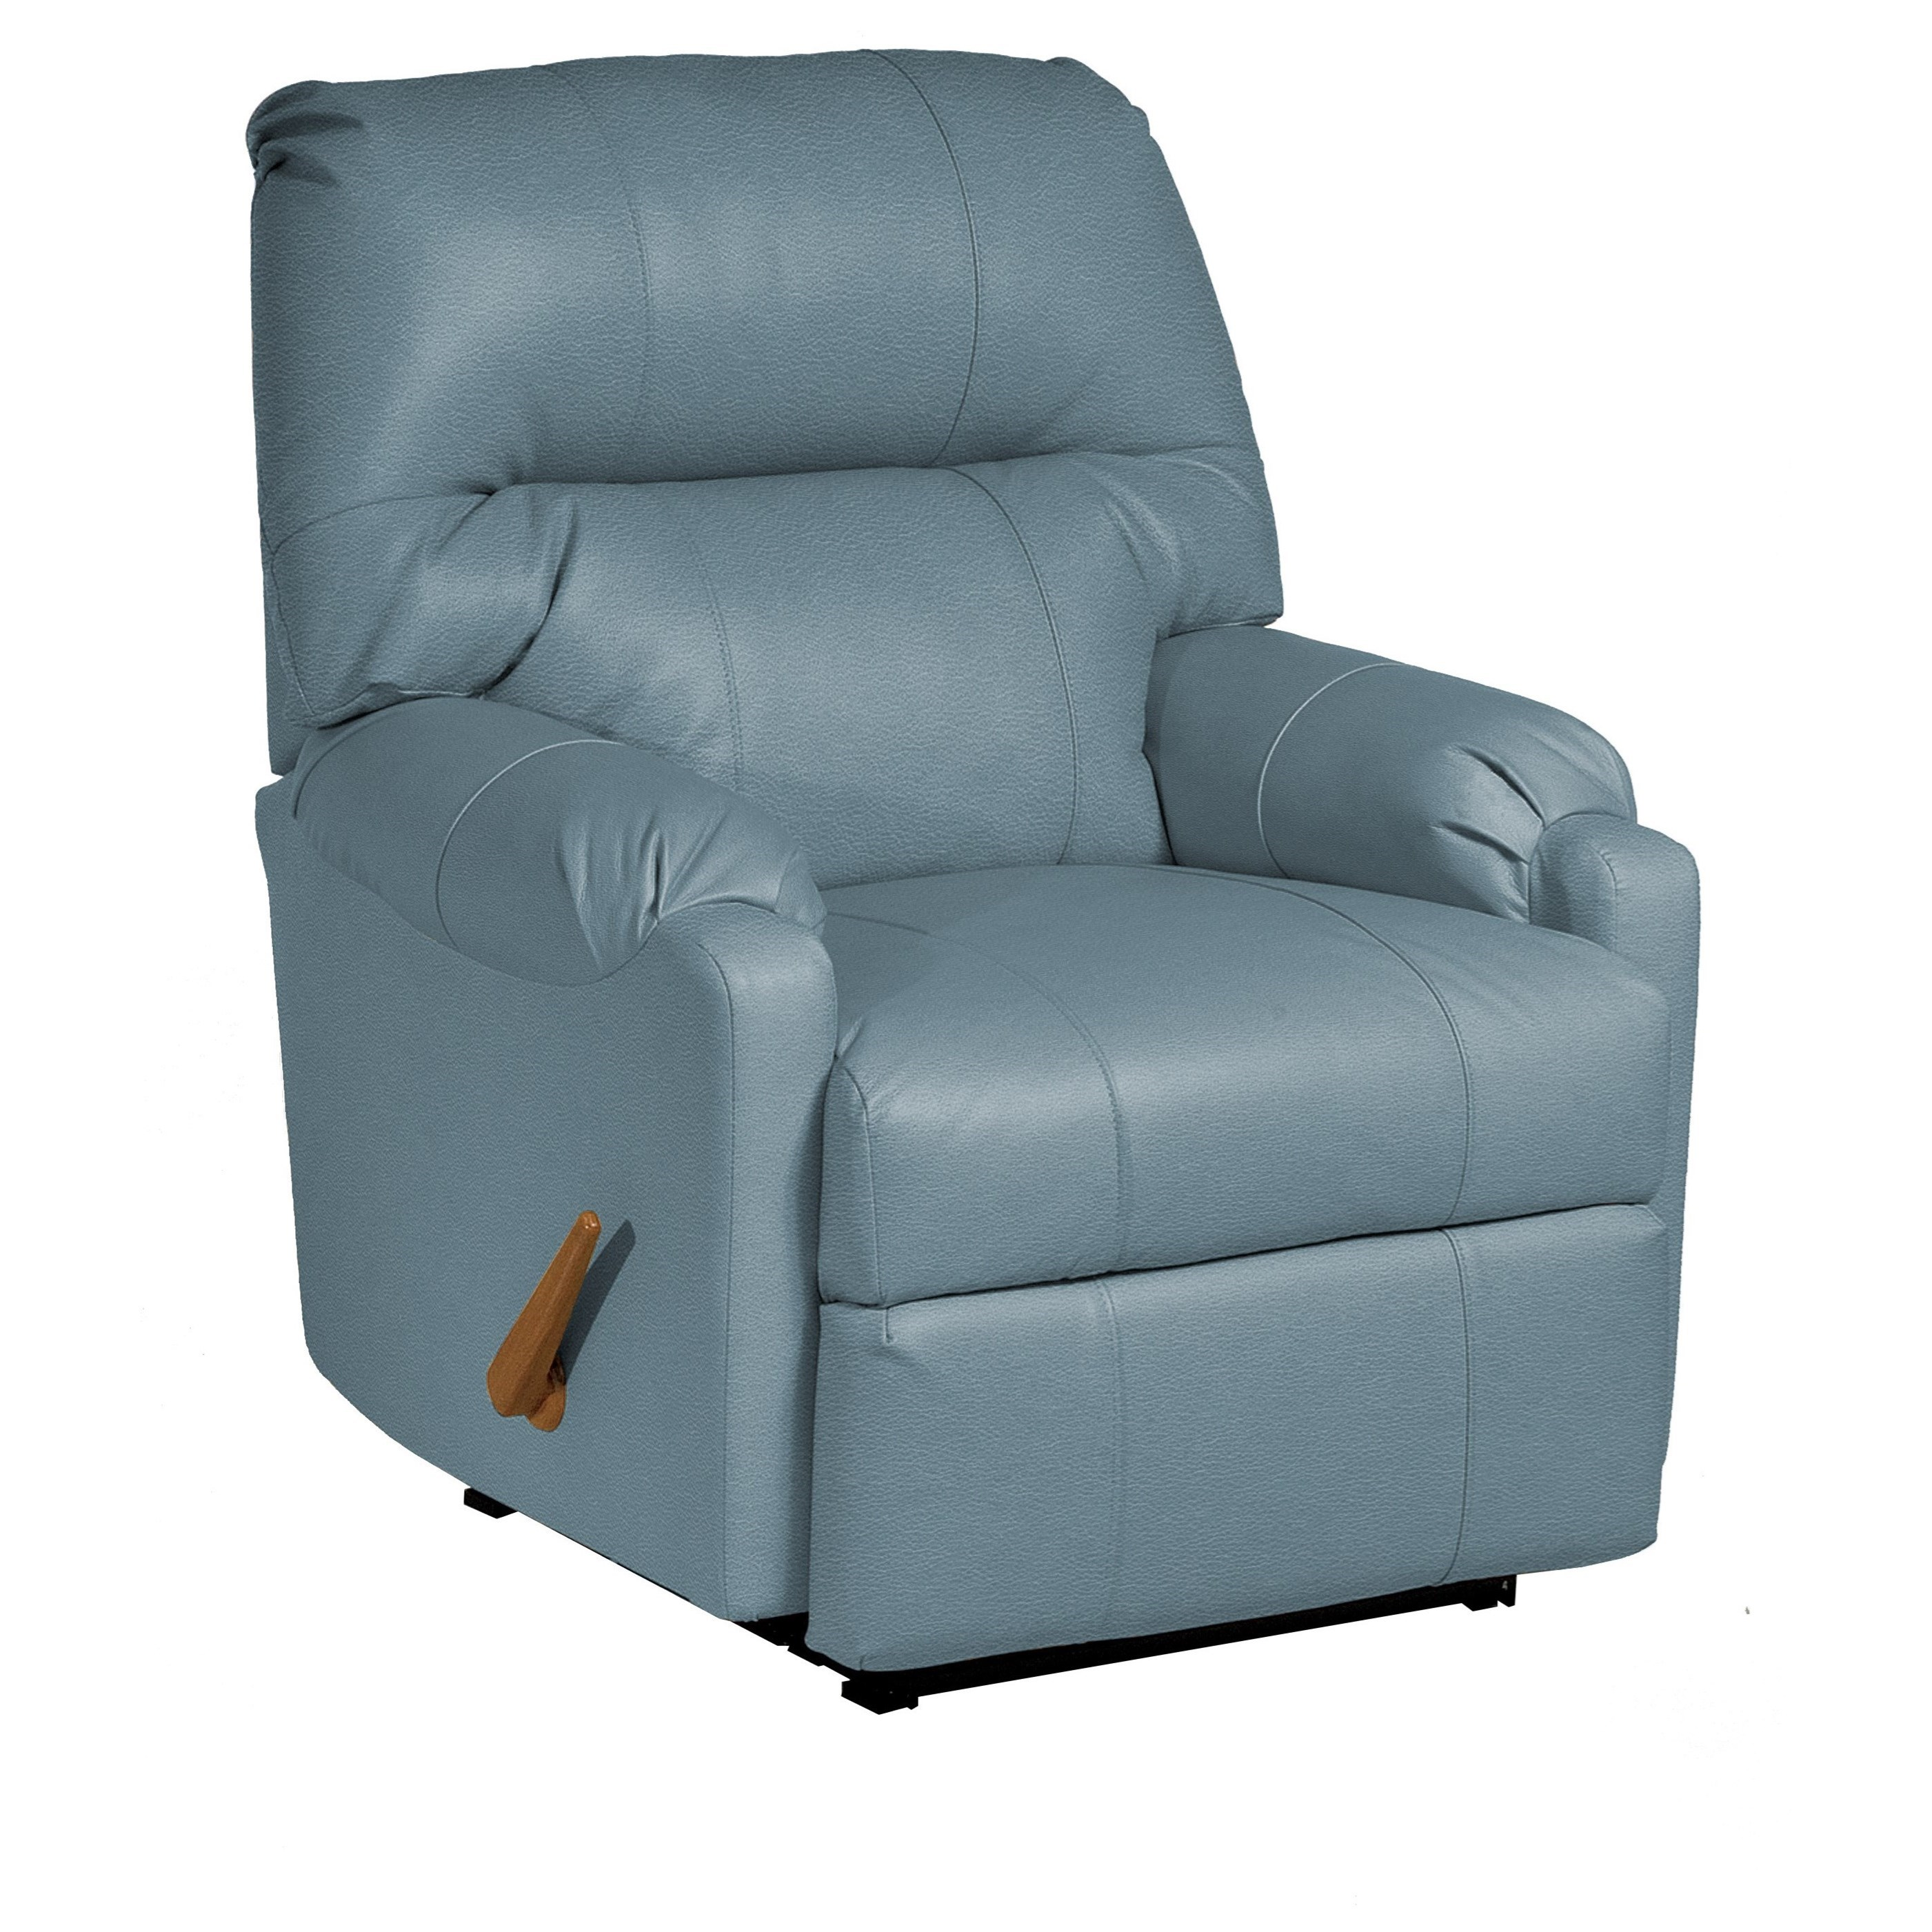 JoJo Wallhugger Recliner by Best Home Furnishings at Baer's Furniture